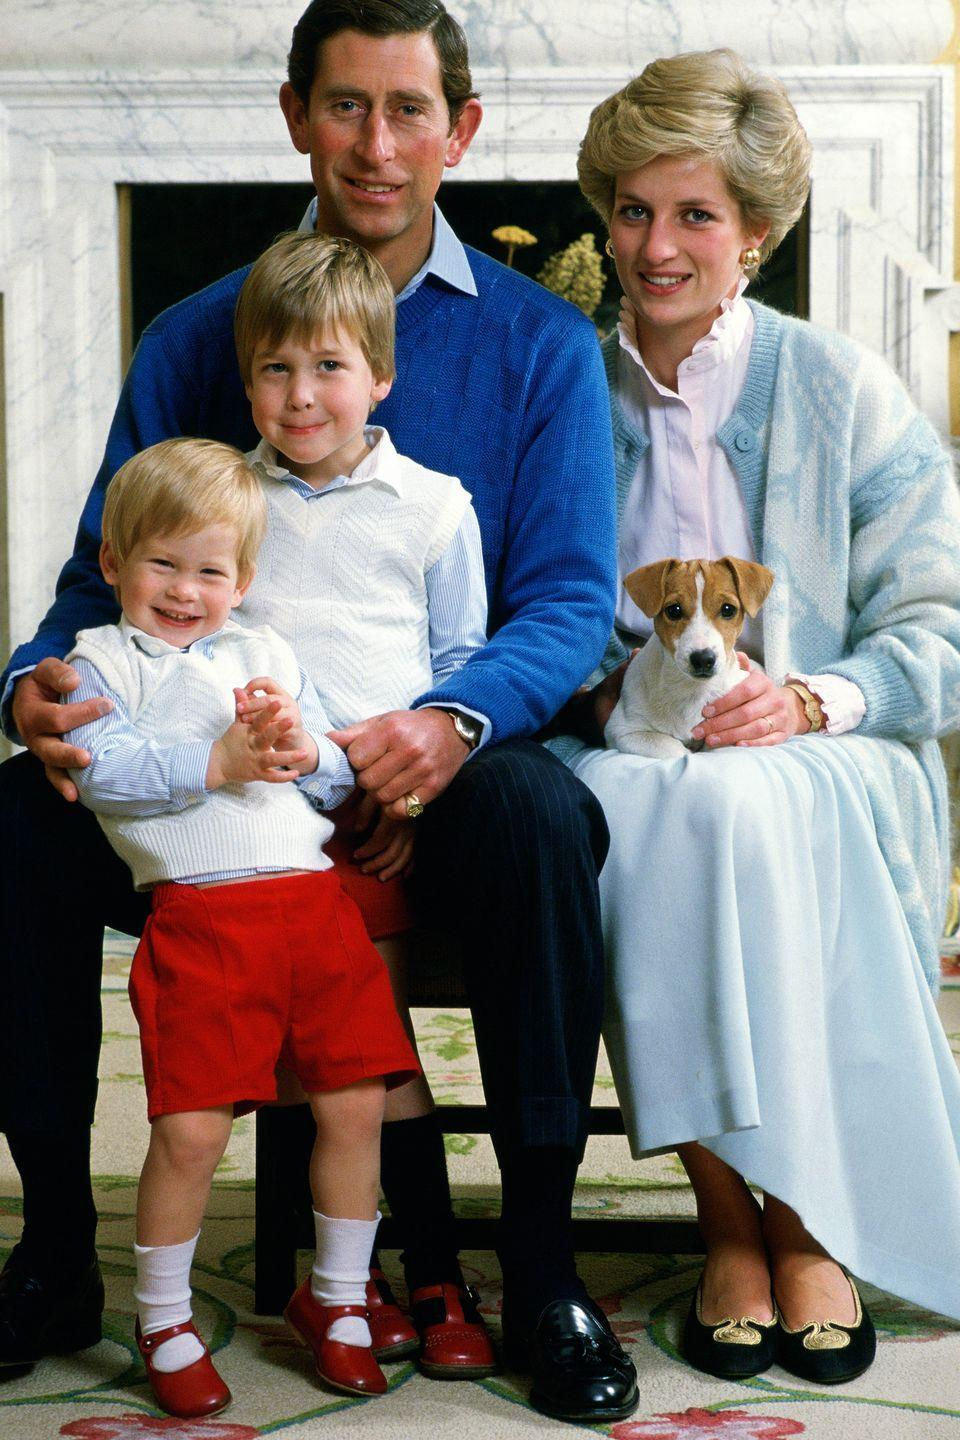 <p>Prince Charles, Princess Diana, Prince William, and Prince Harry smile for a family photo in Kensington Palace. </p>